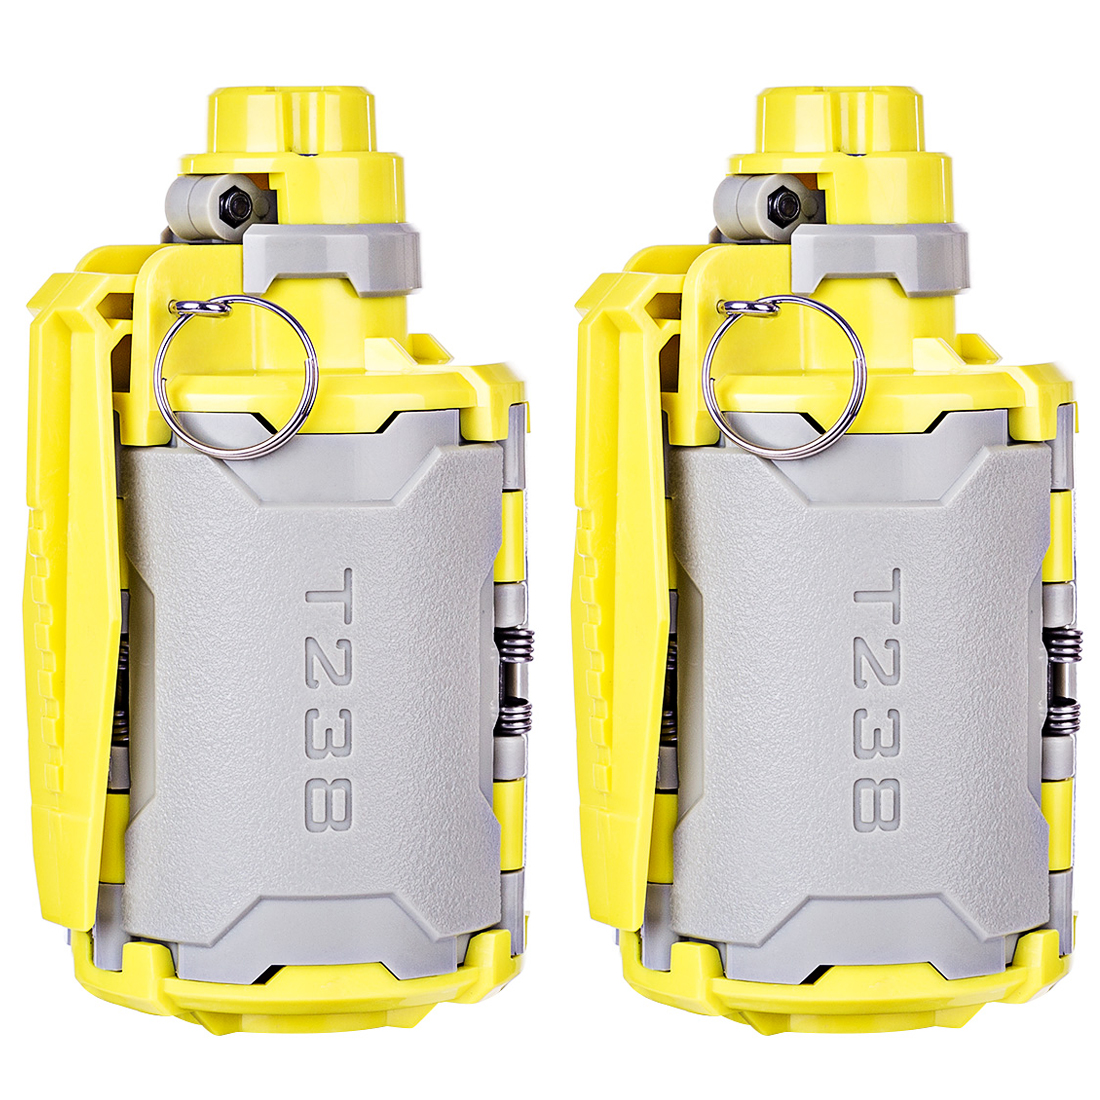 2 Pcs <font><b>T238</b></font> <font><b>V2</b></font> Large Capacity Water Bullet Bomb Toy With Time-Delayed Function For Gel Ball BBs Airsoft Wargame-Grey+Yellow image